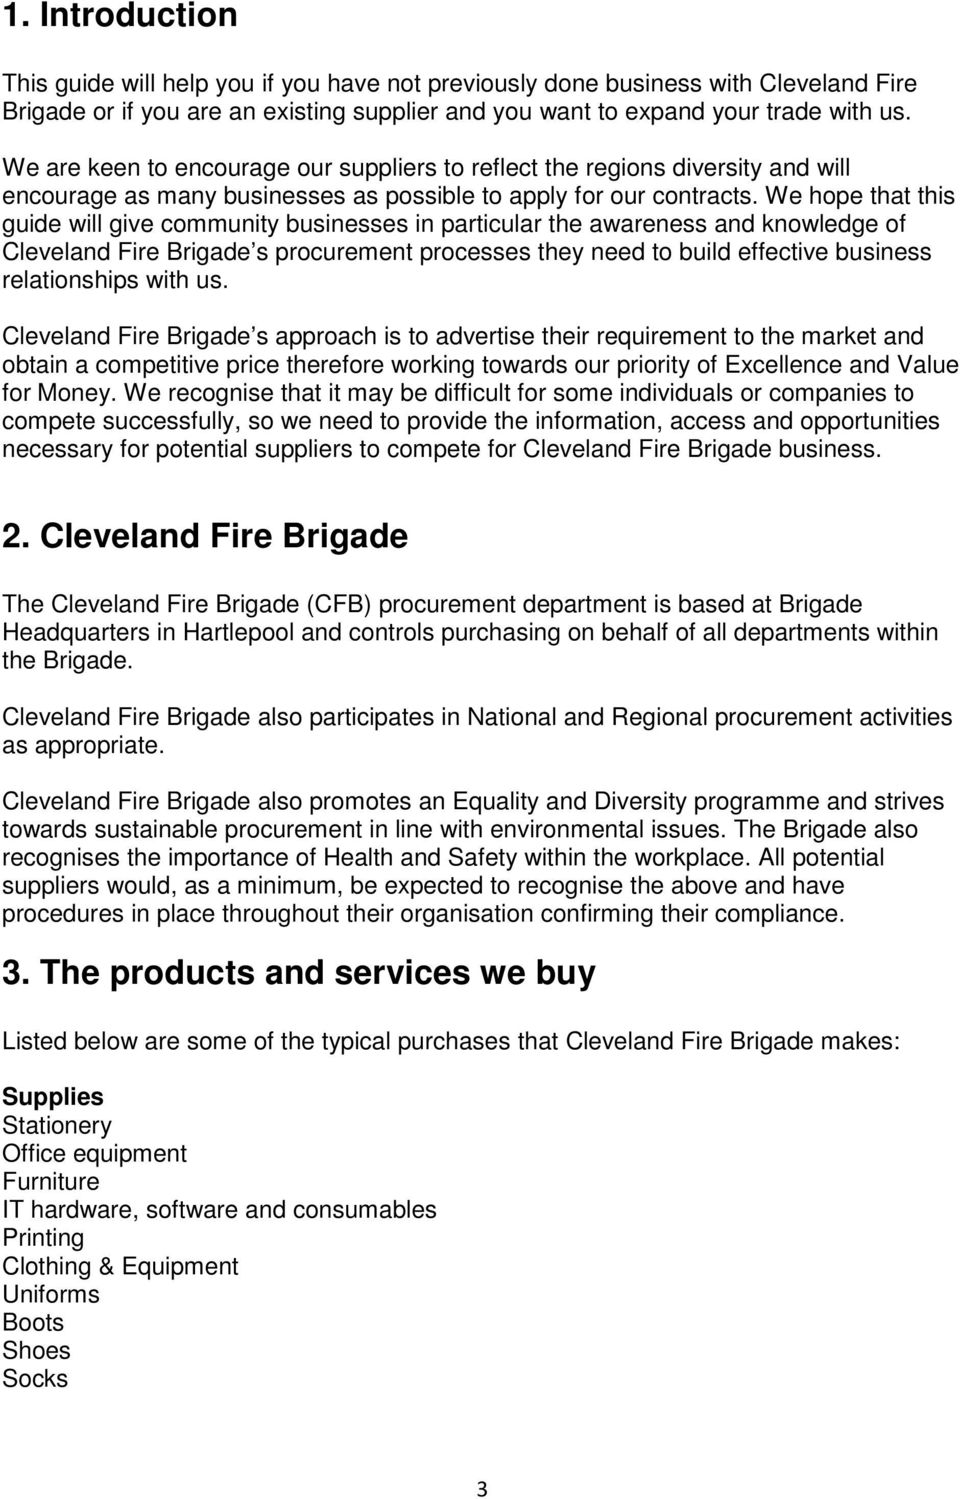 We hope that this guide will give community businesses in particular the awareness and knowledge of Cleveland Fire Brigade s procurement processes they need to build effective business relationships